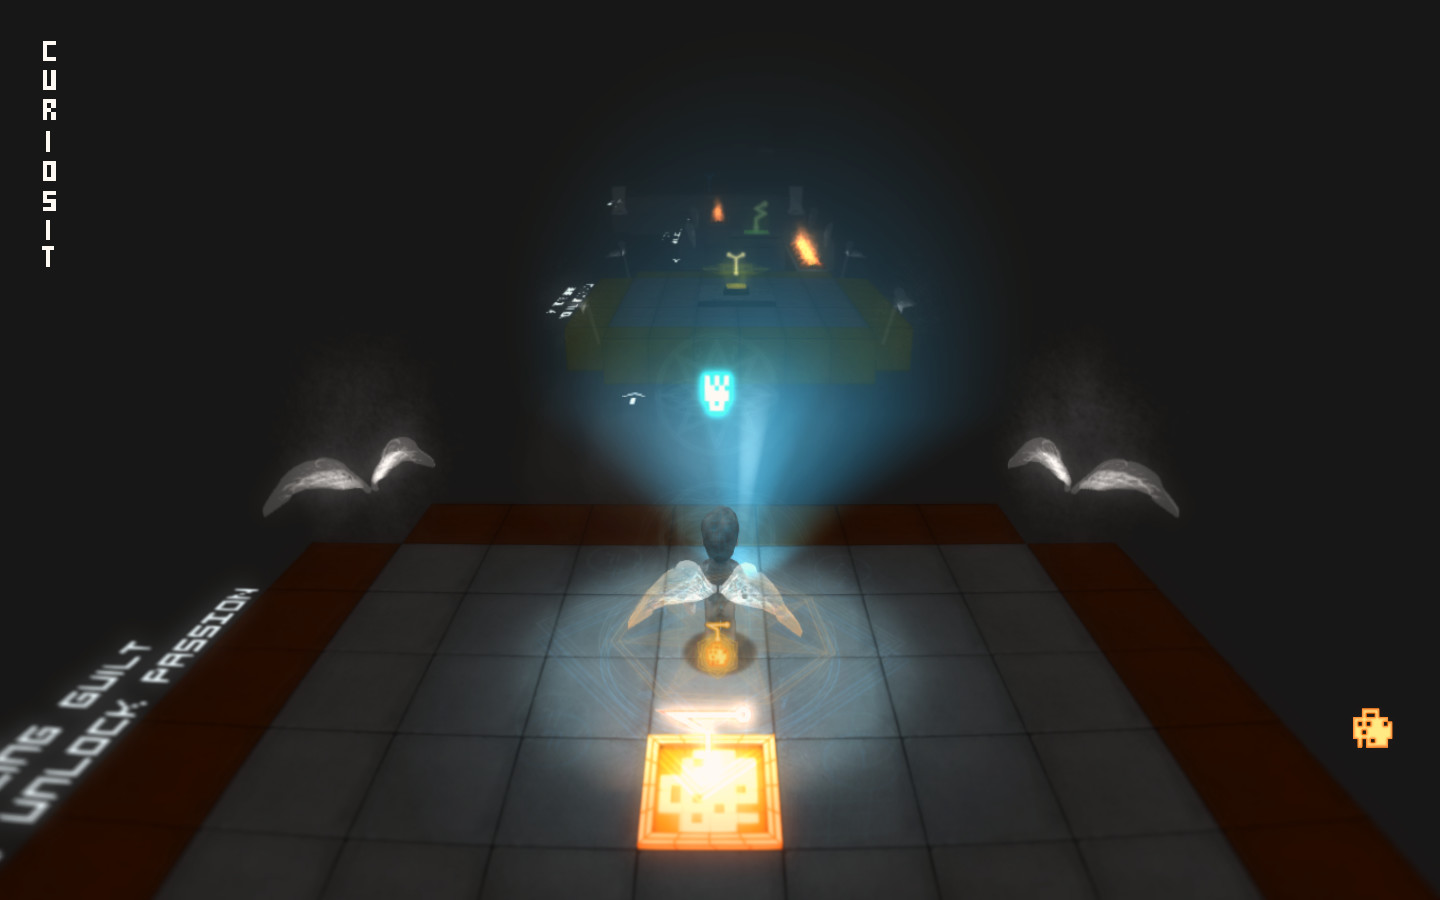 Face It - A game to fight inner demons screenshot